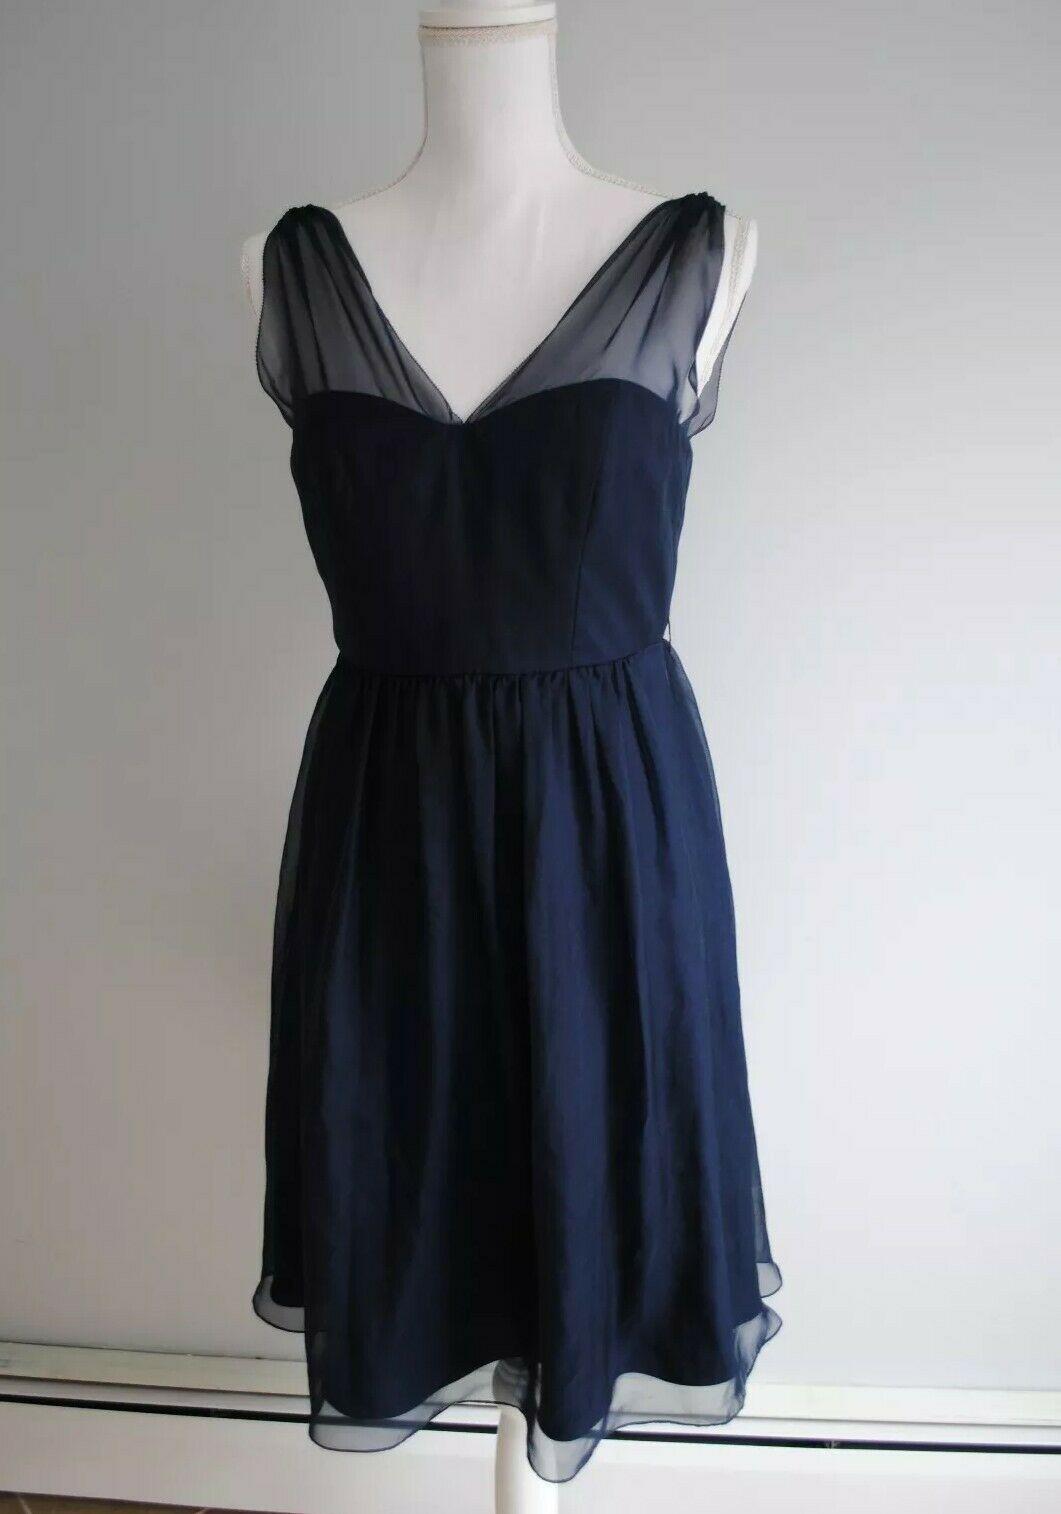 Anthropologie QUILLAREE Cocktail Dress- Sz 4 Navy Blau, Evening Formal A-Line